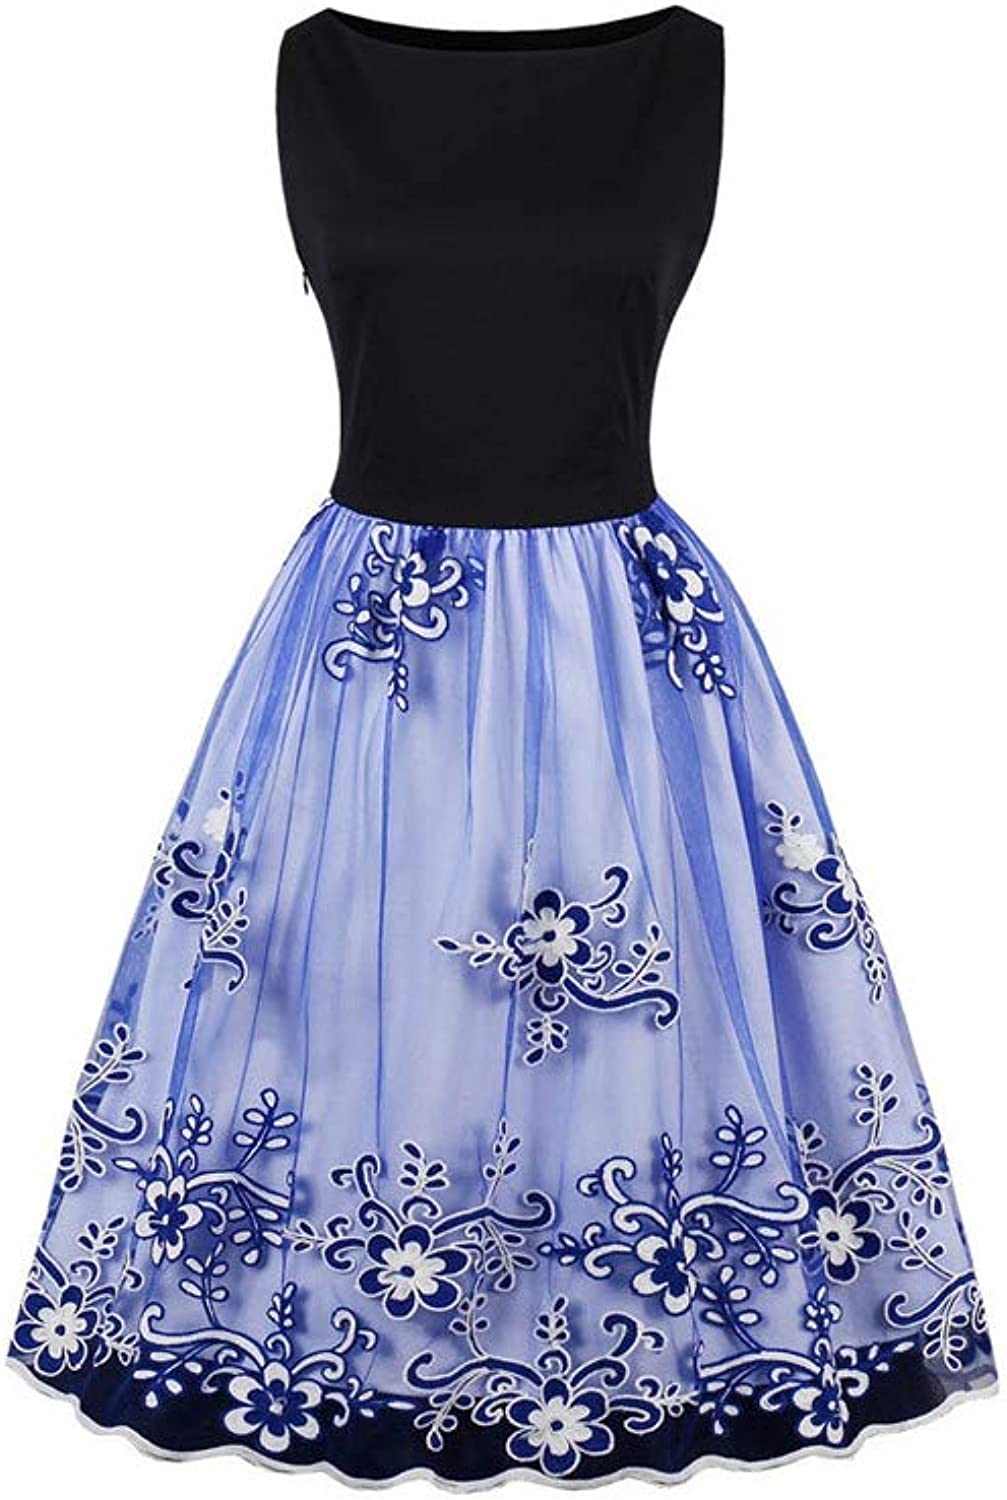 Aignse Mesh Embroidery bluee Floral Pleated Dress Women Gorgeous Summer Dress up Fit and Flare Dresses